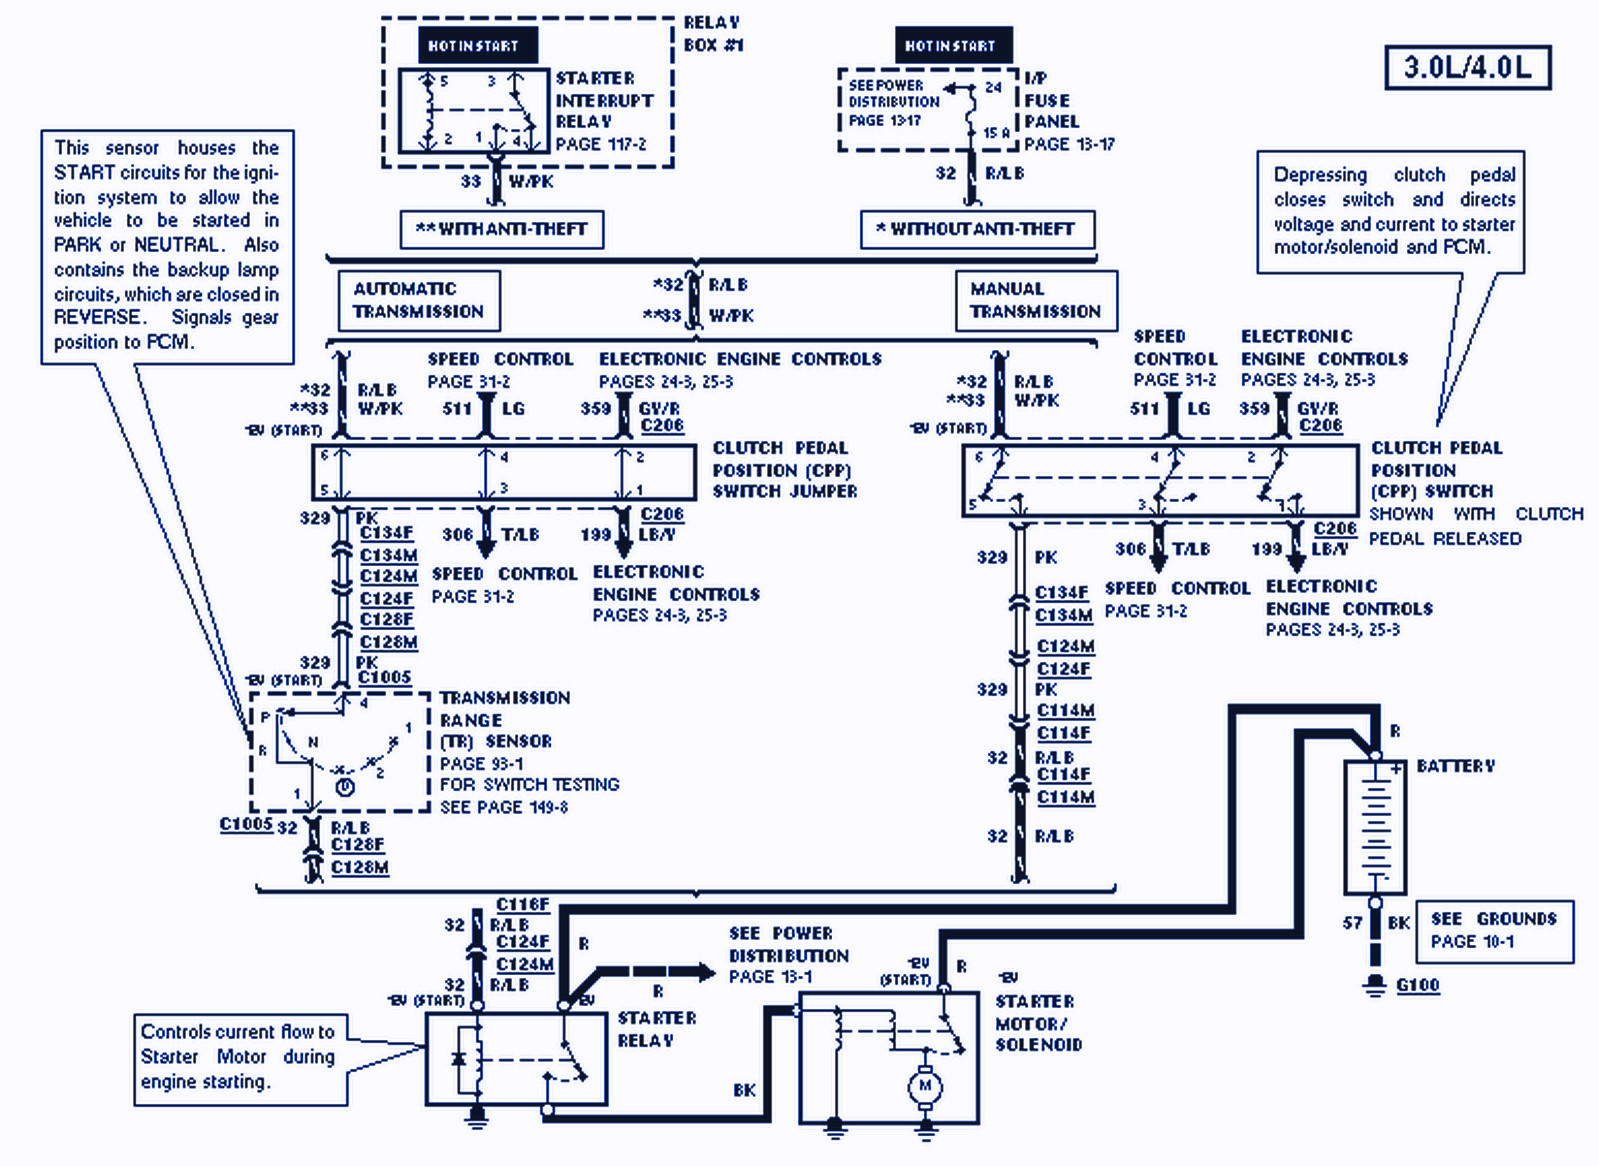 1990 ford f700 wiring diagram best wiring libraryford f800 wiring schematic data wiring diagram ford f700 [ 1599 x 1166 Pixel ]